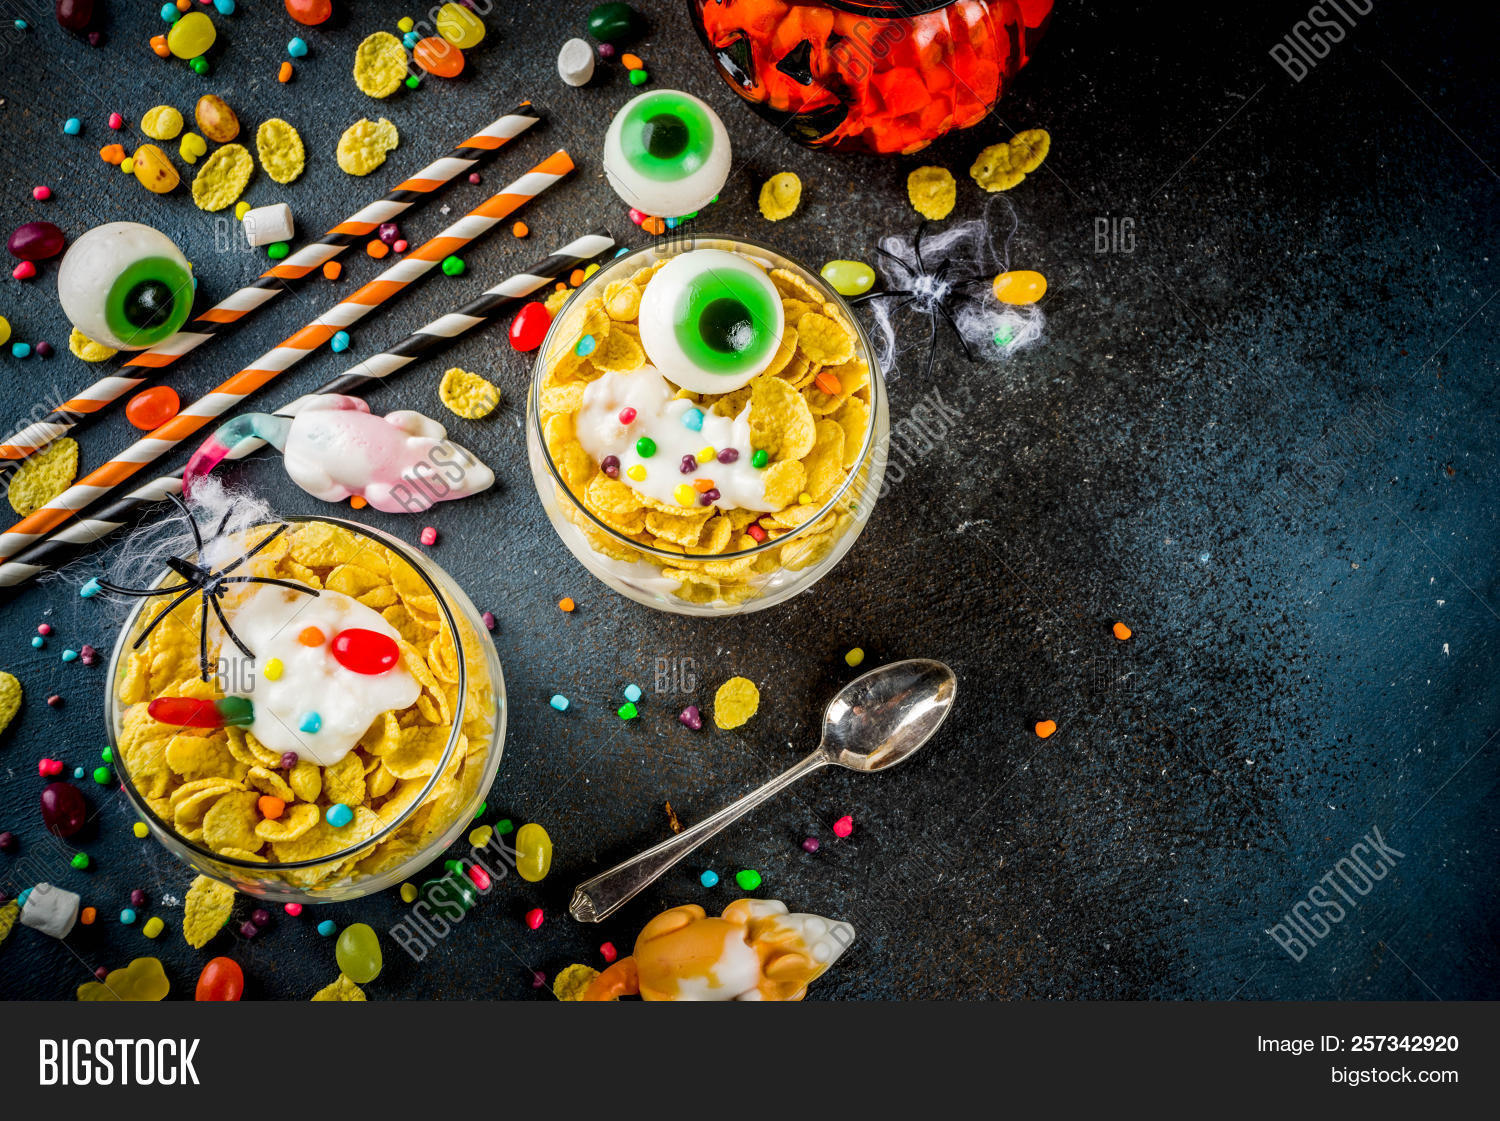 Funny Halloween Food Image & Free Trial